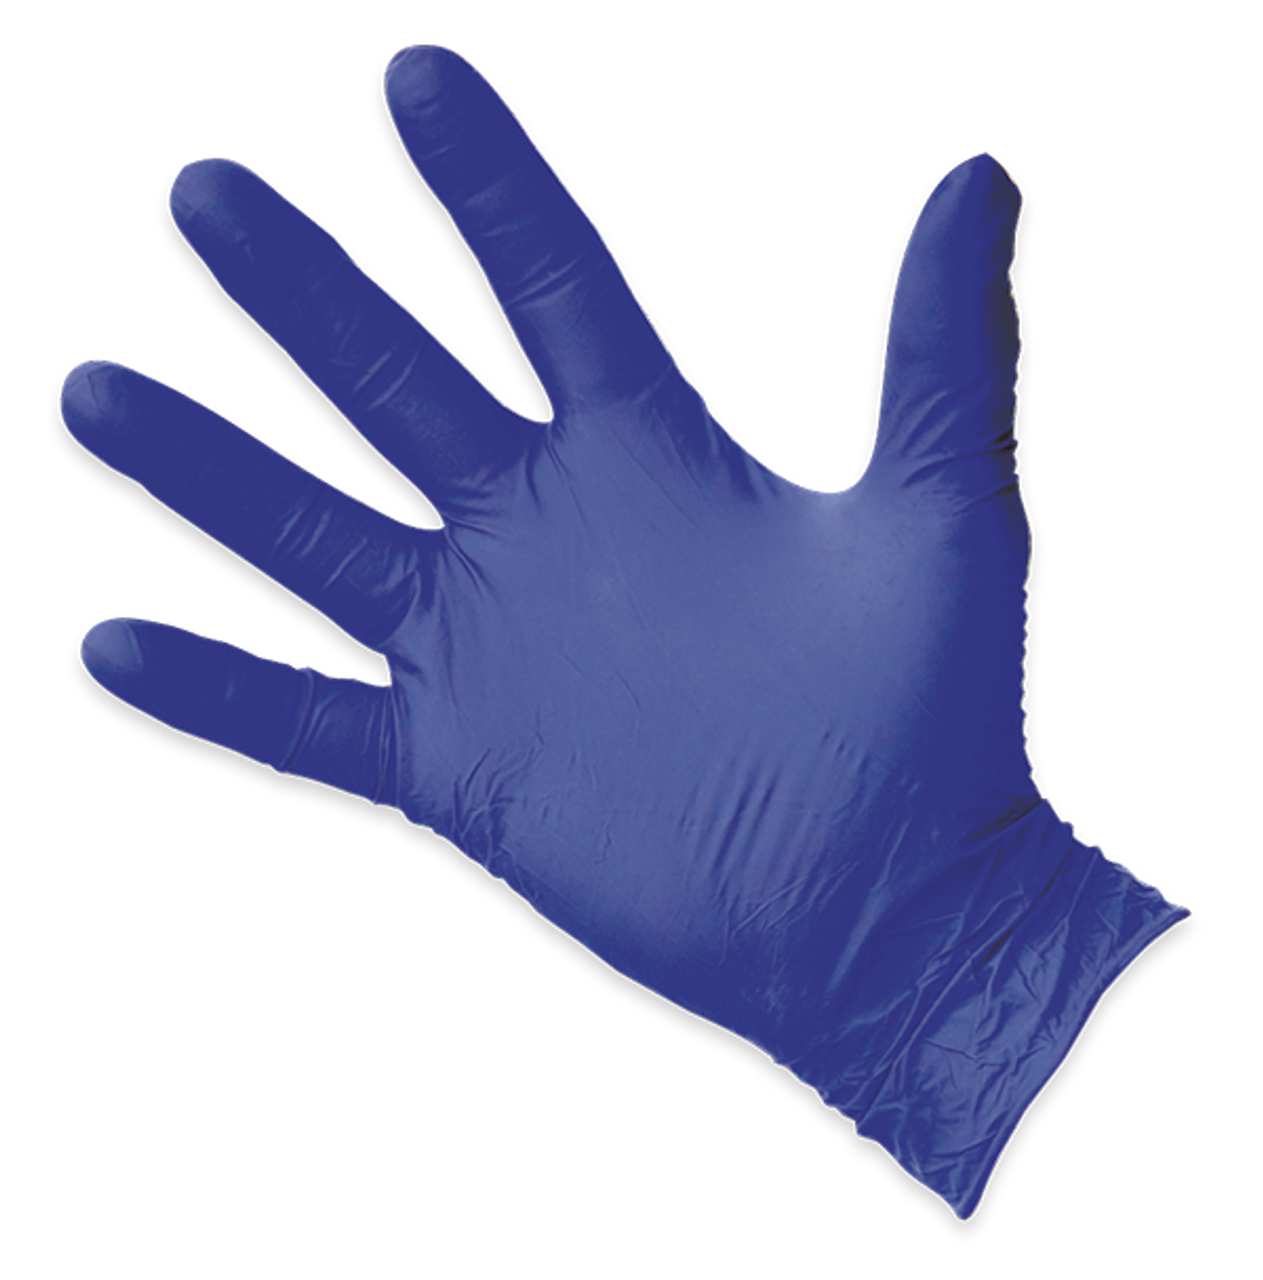 Quantum Blue Nitrile Exam Glove, $11.97 per 100 gloves, 10 boxes of 100 per case